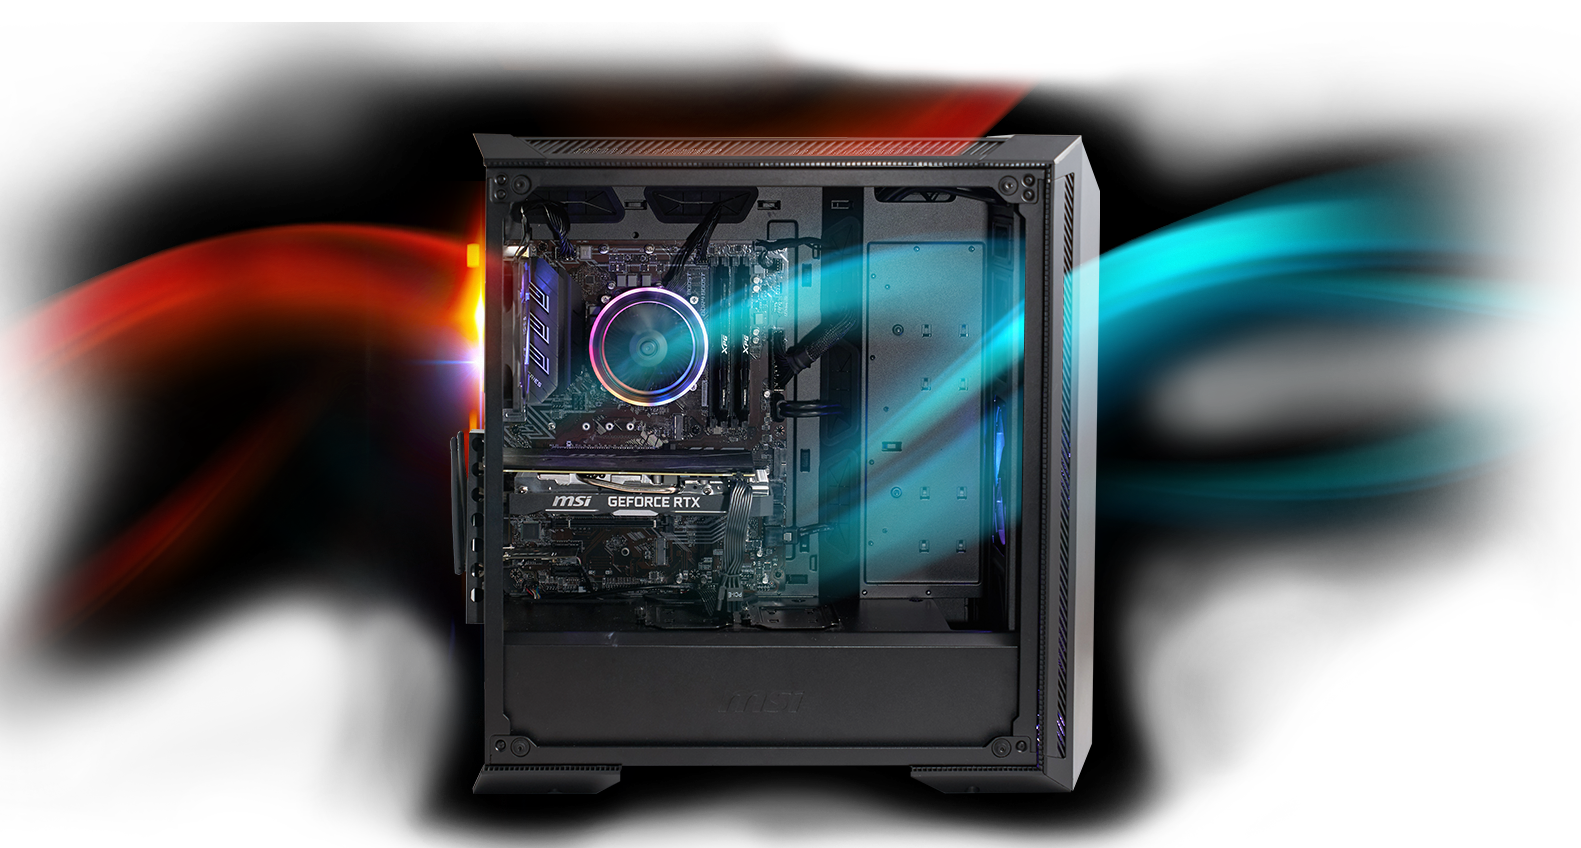 Aegis RS with cool air flowing through the front of the MSI Gungnir Case, and hot air exhausting through the top and back of the case.